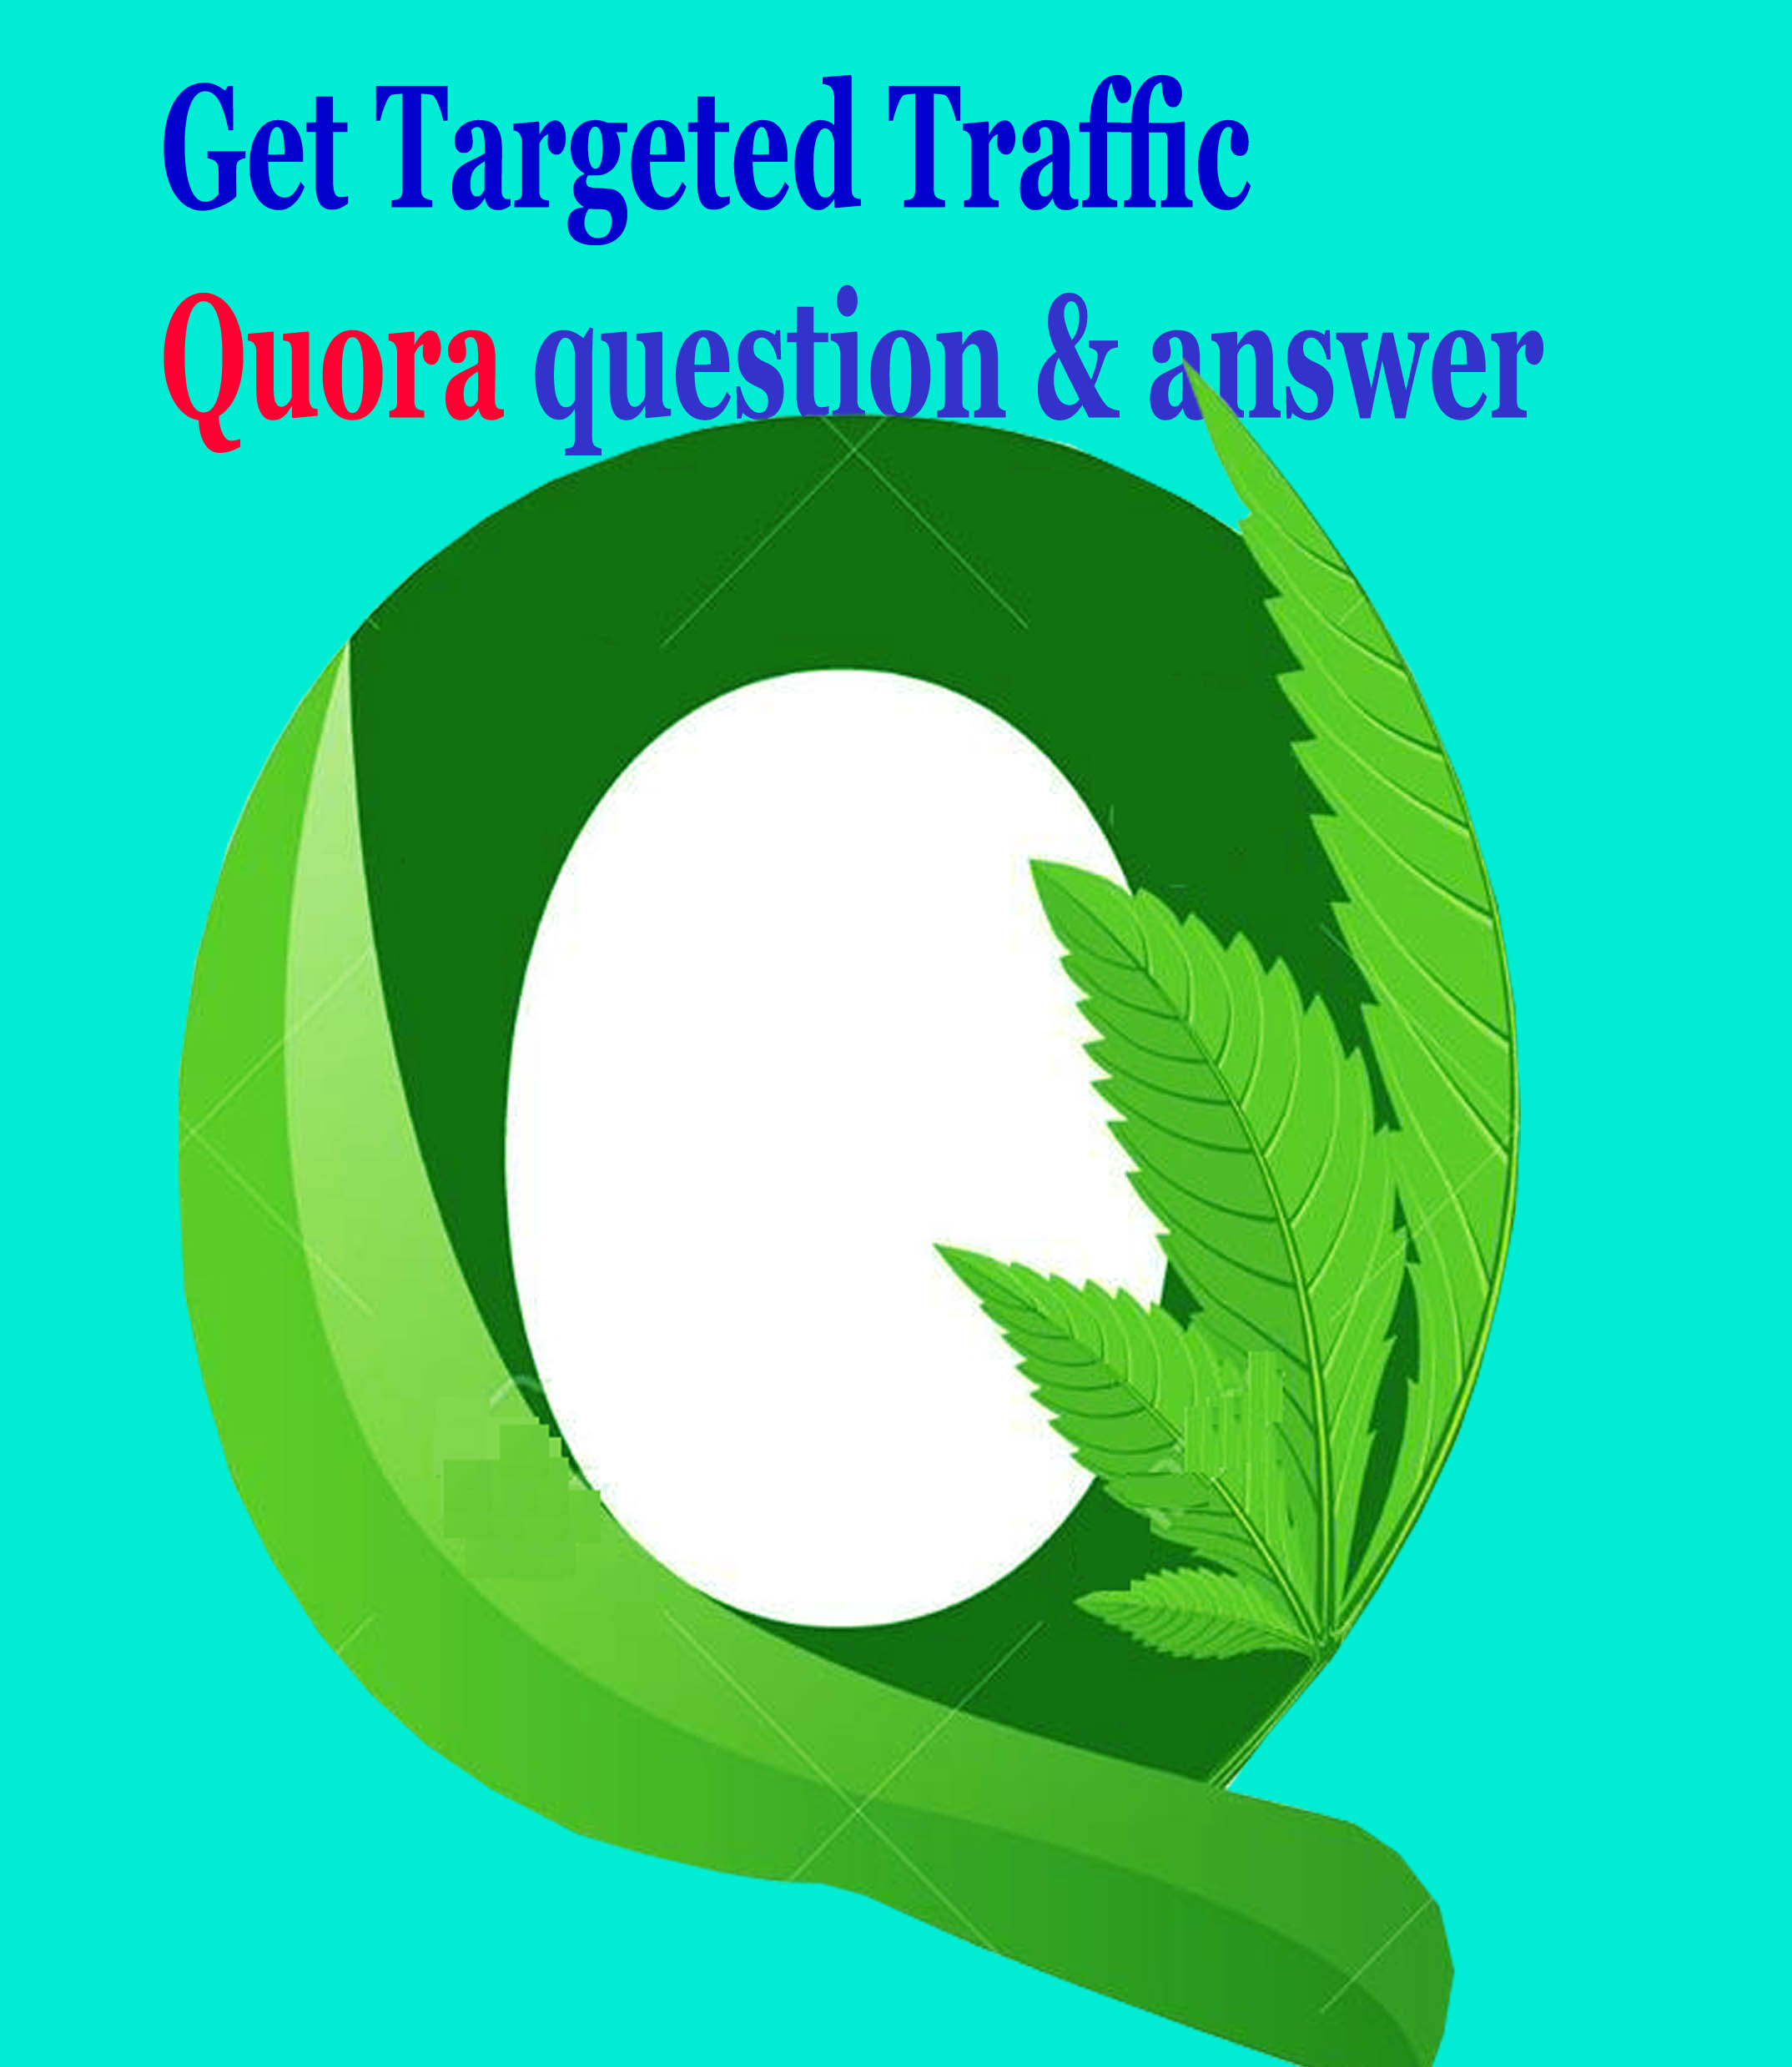 10 answer with High Quality Image to get traffic